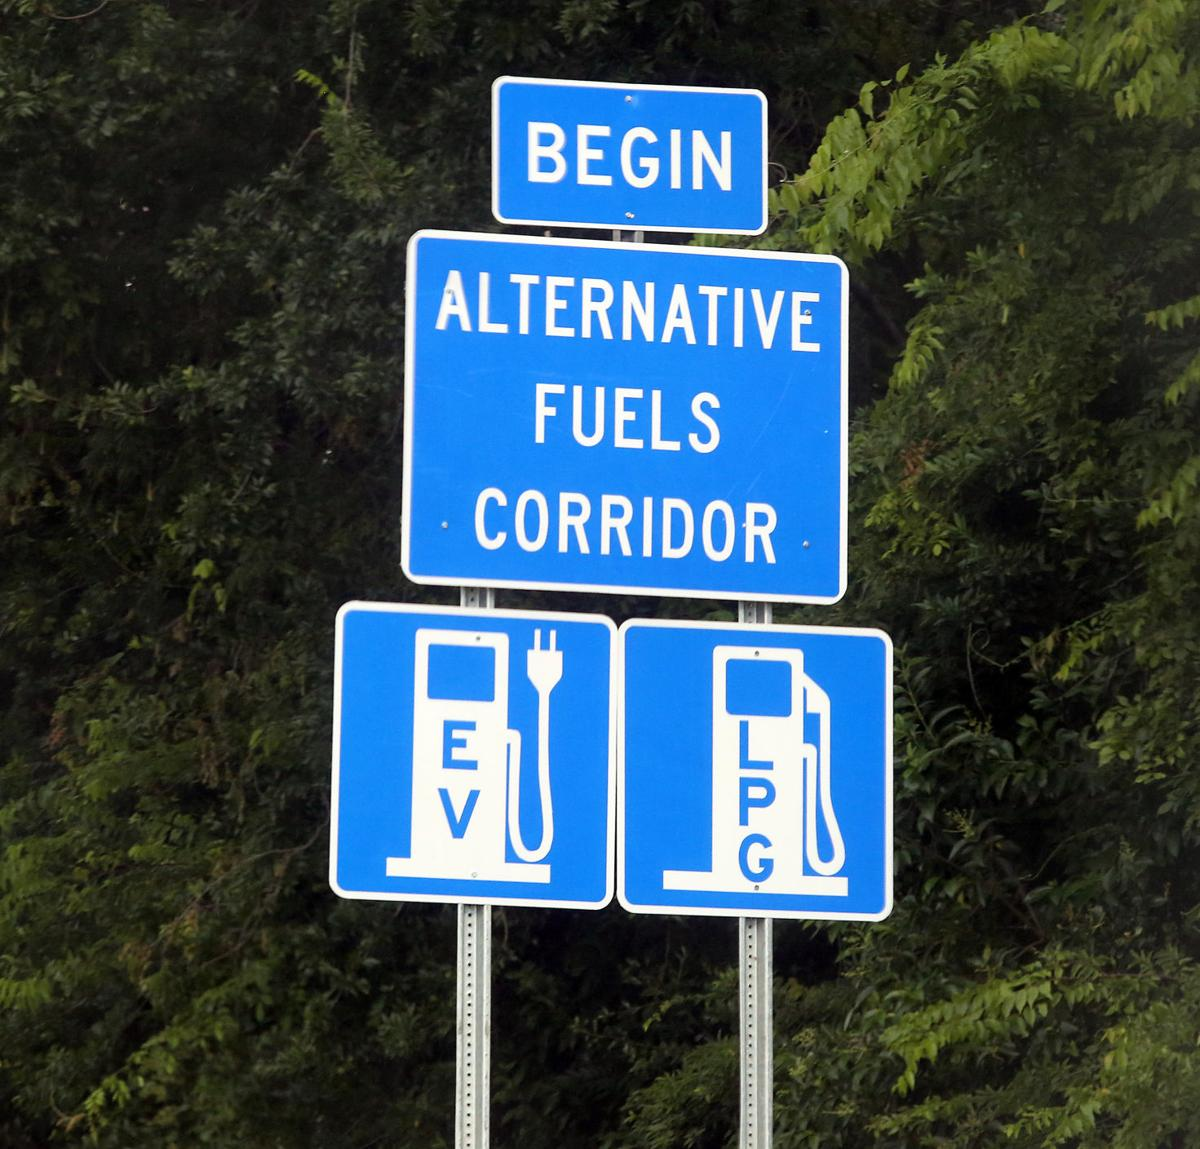 Alternative Fuels Corridor